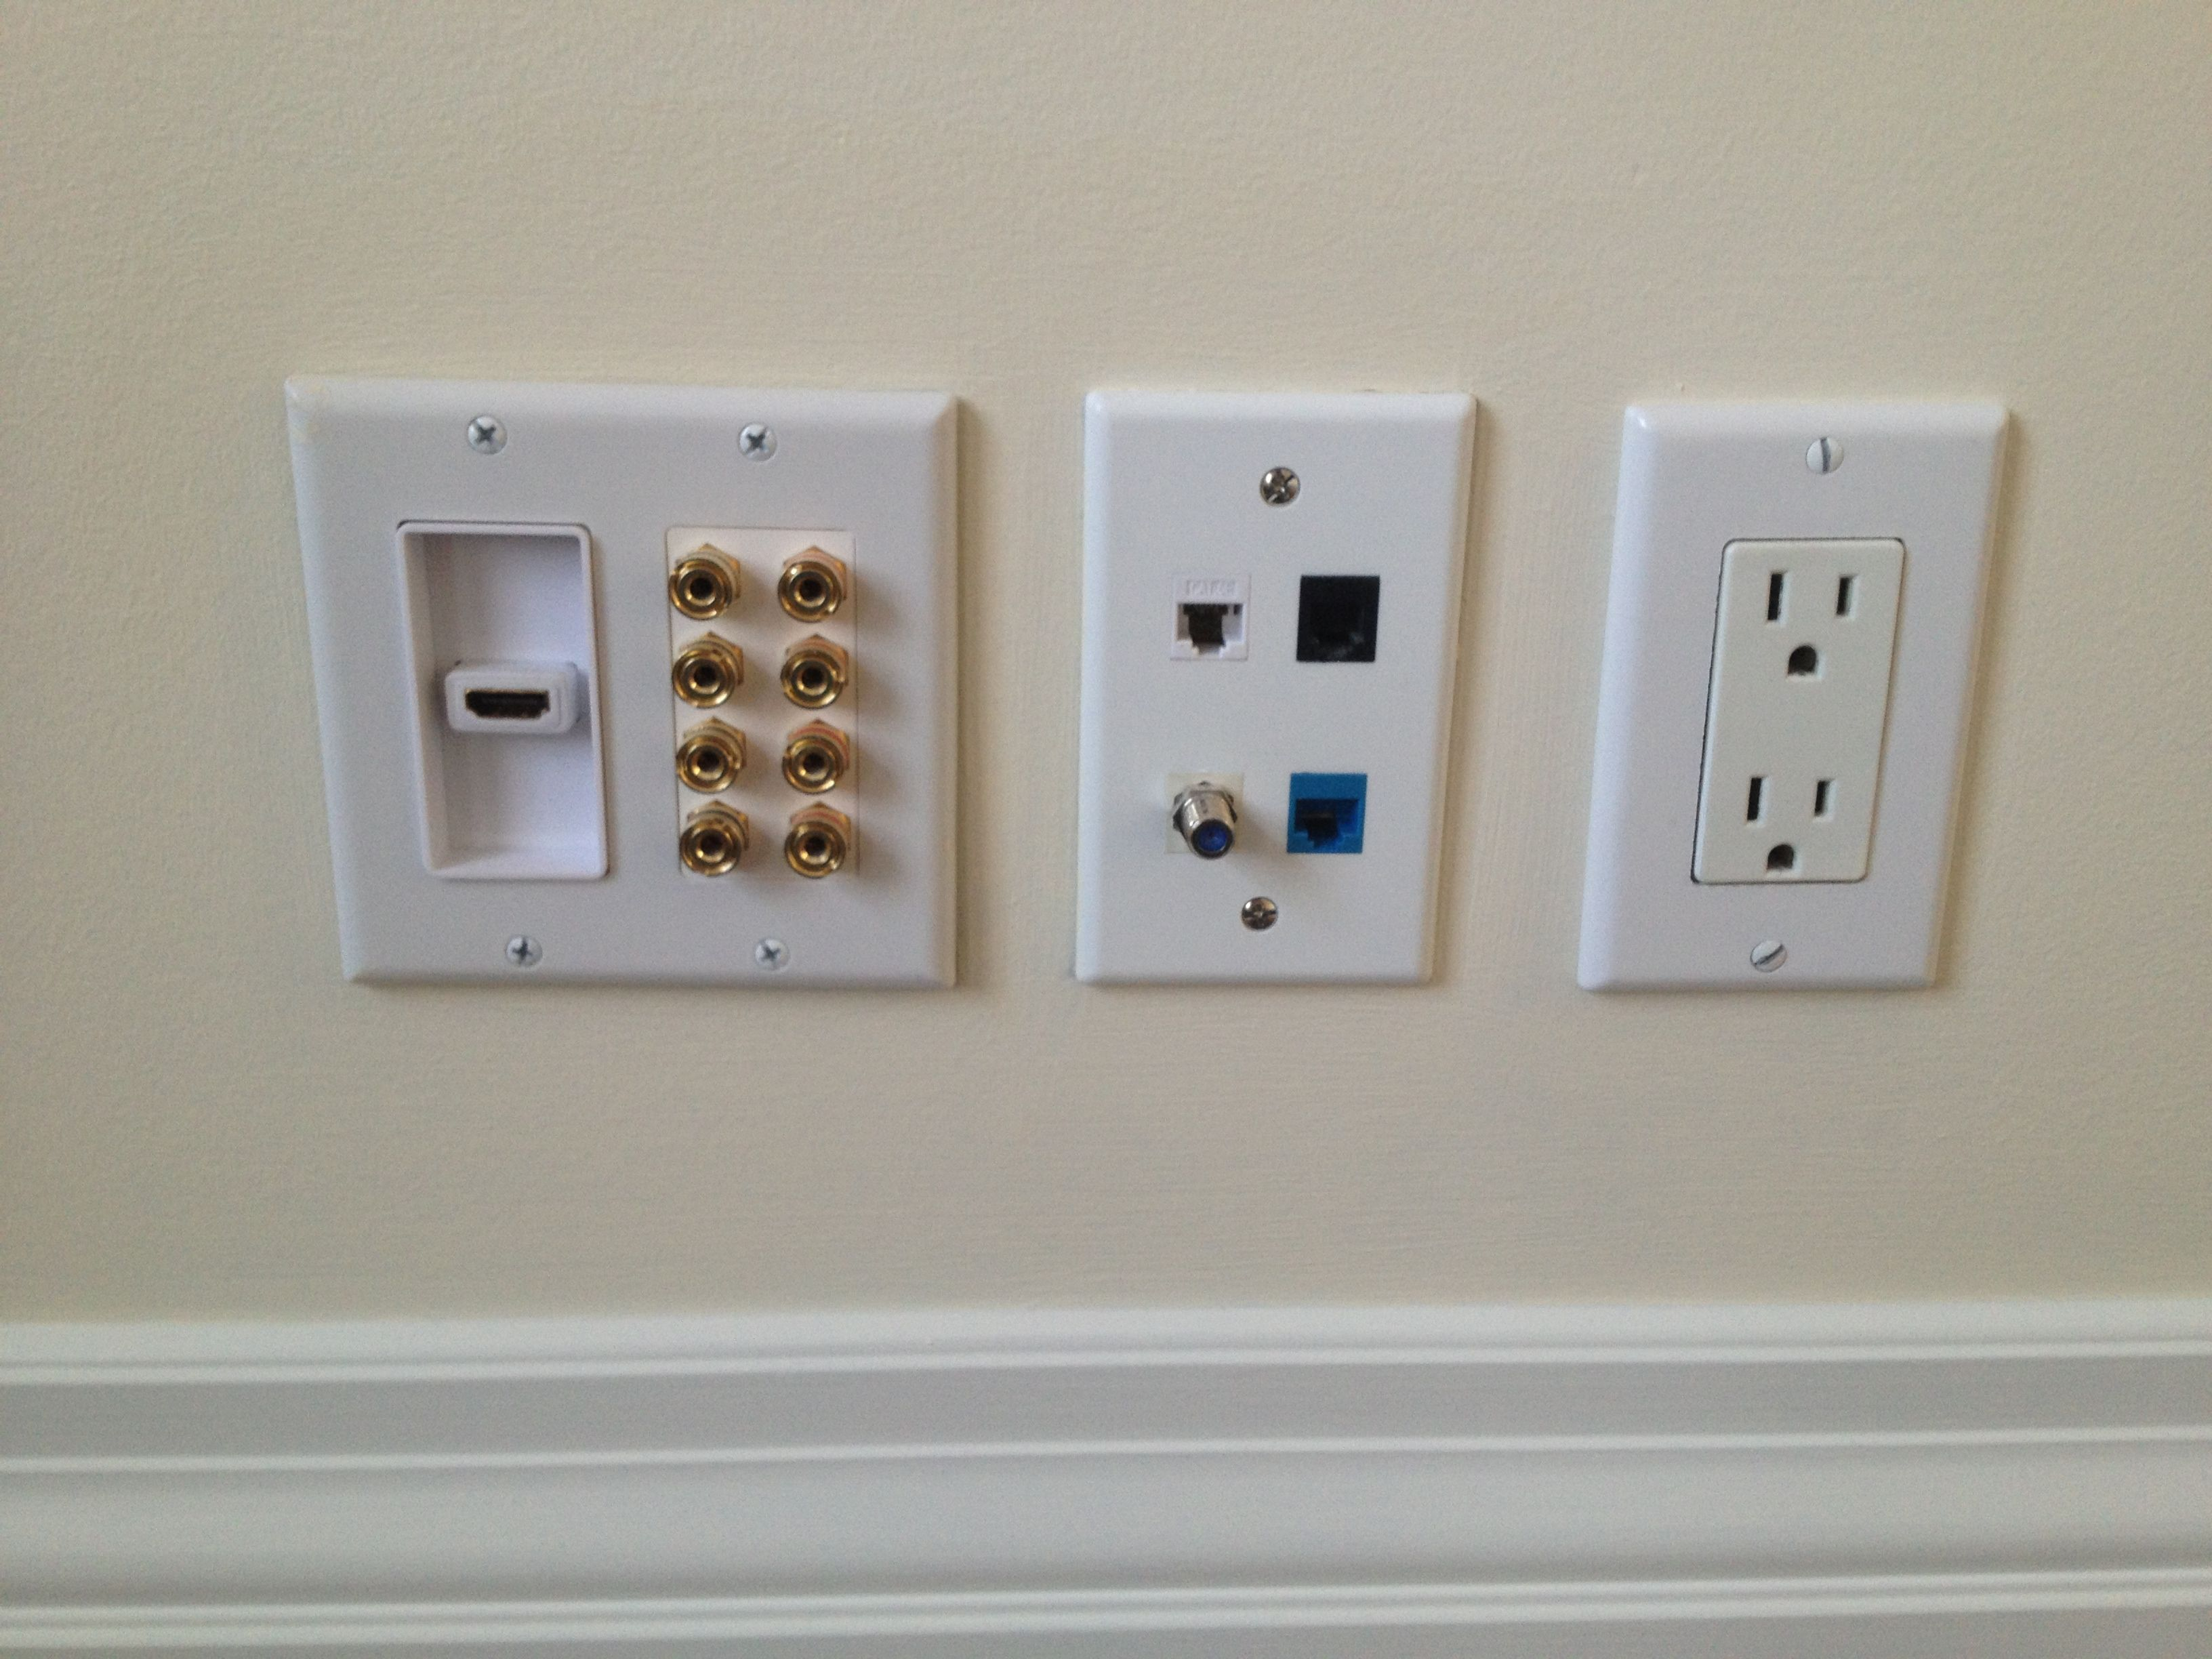 Banana Plug Wall Plate Delectable 1 Hdmi Port Decora Insert With 4 Pairs Of Banana Plug Binding Post Design Decoration